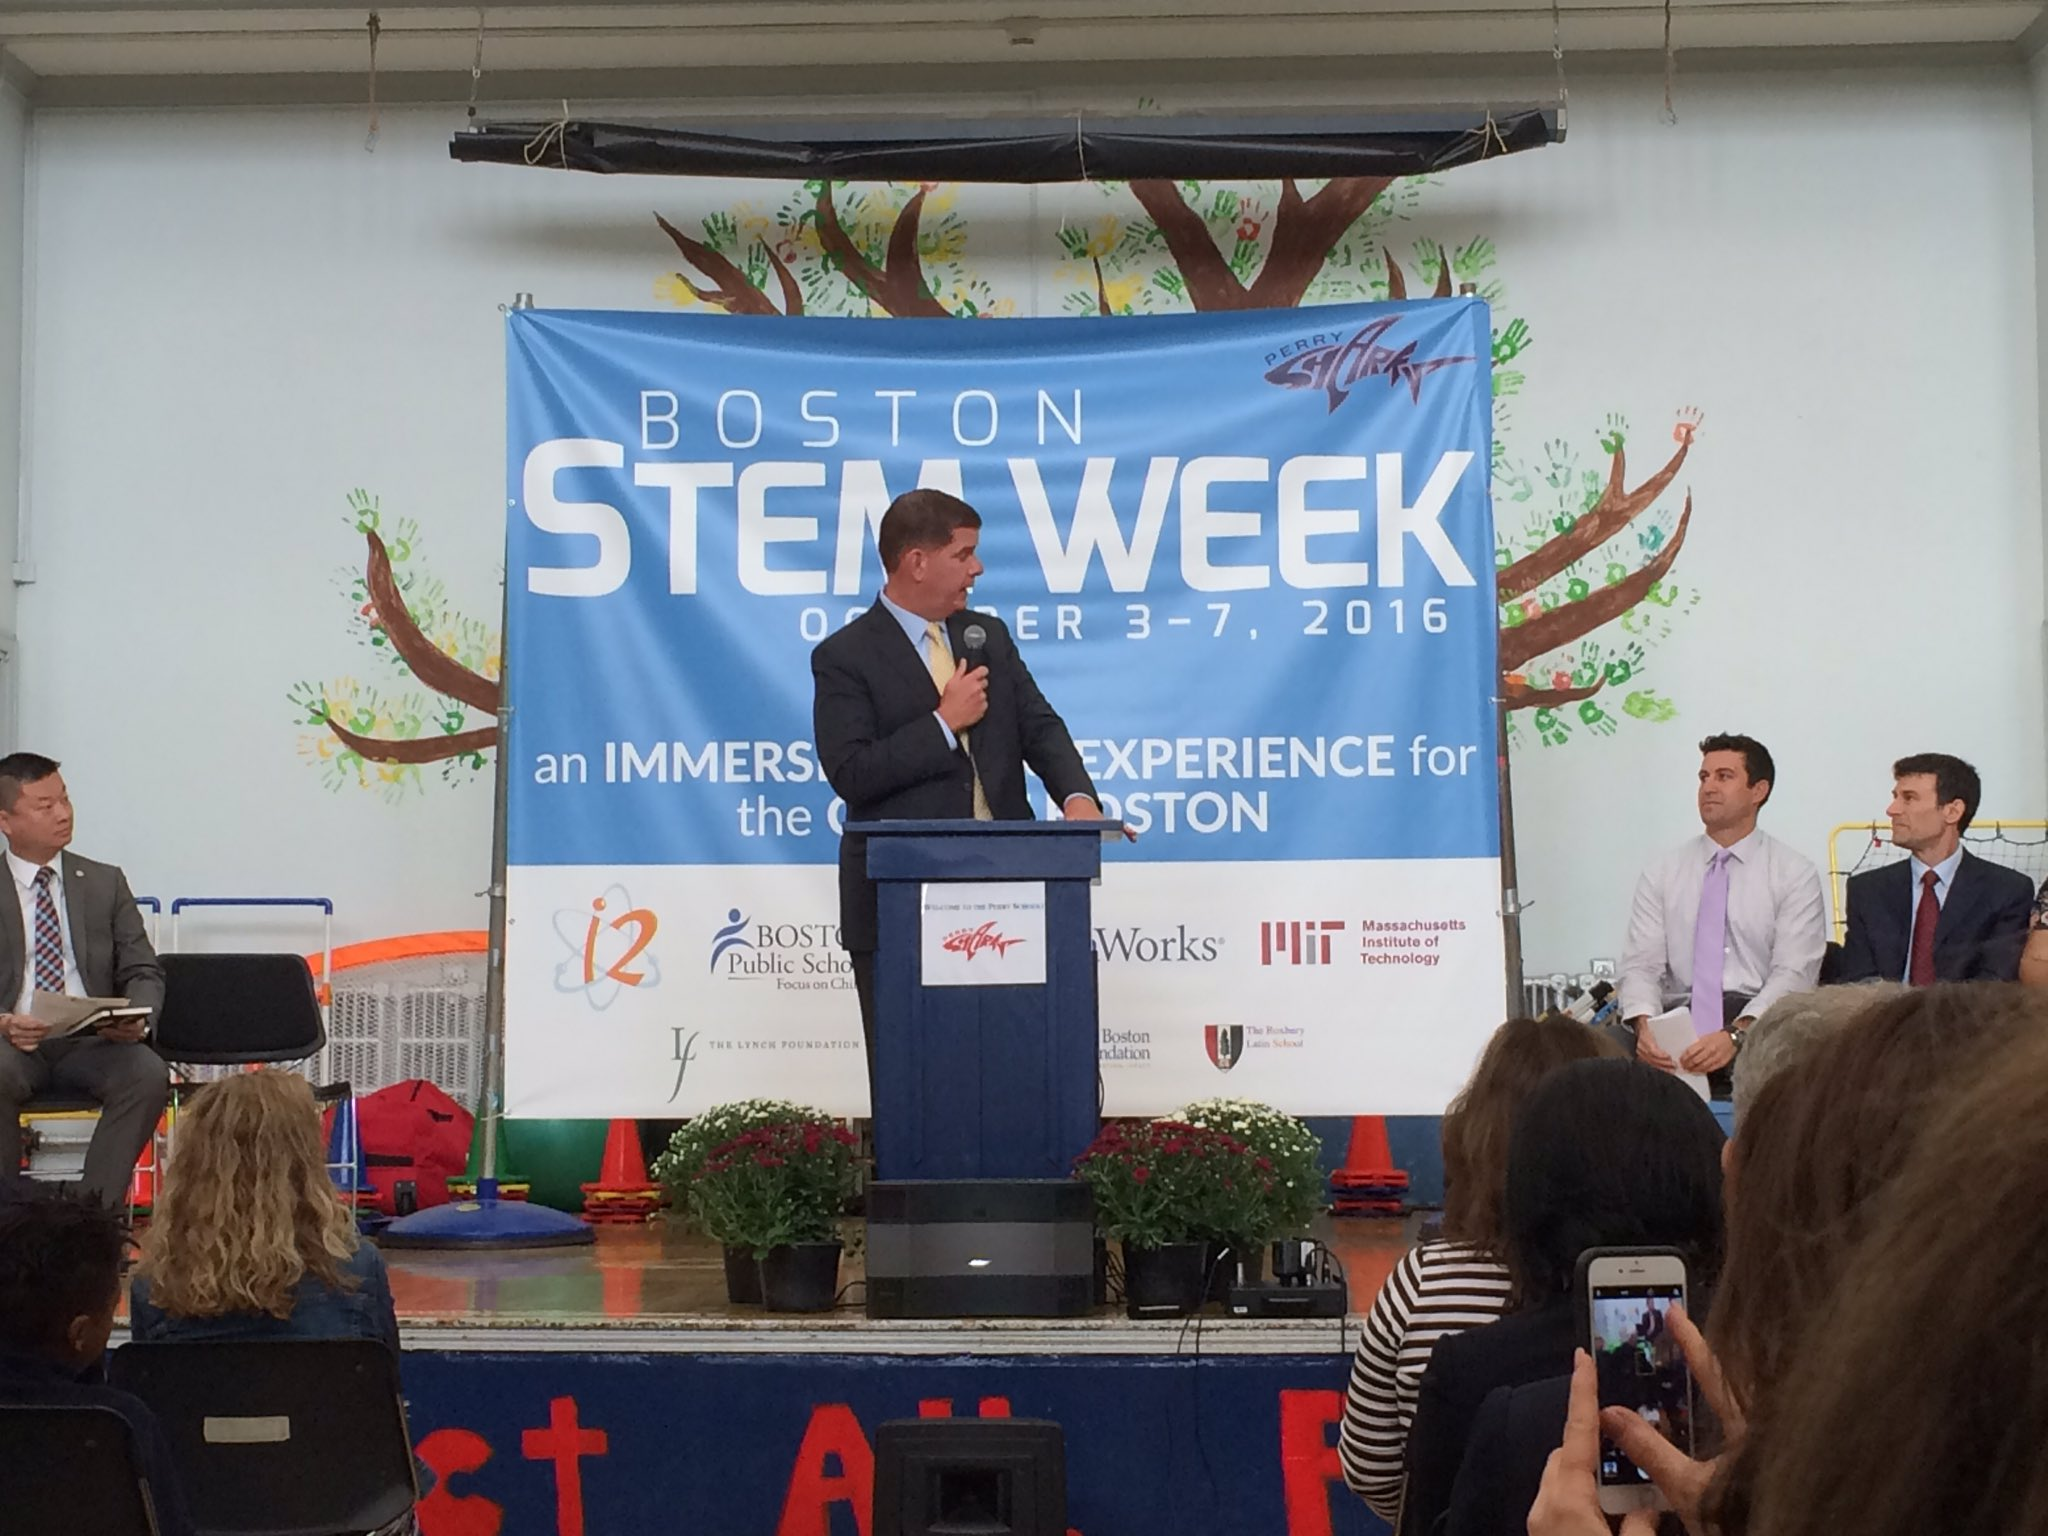 Thanks for the acknowledgment @marty_walsh! @bostonfdn is proud to support Boston STEM Week! #STEM #bostonstemweek https://t.co/bhG3OpuCre